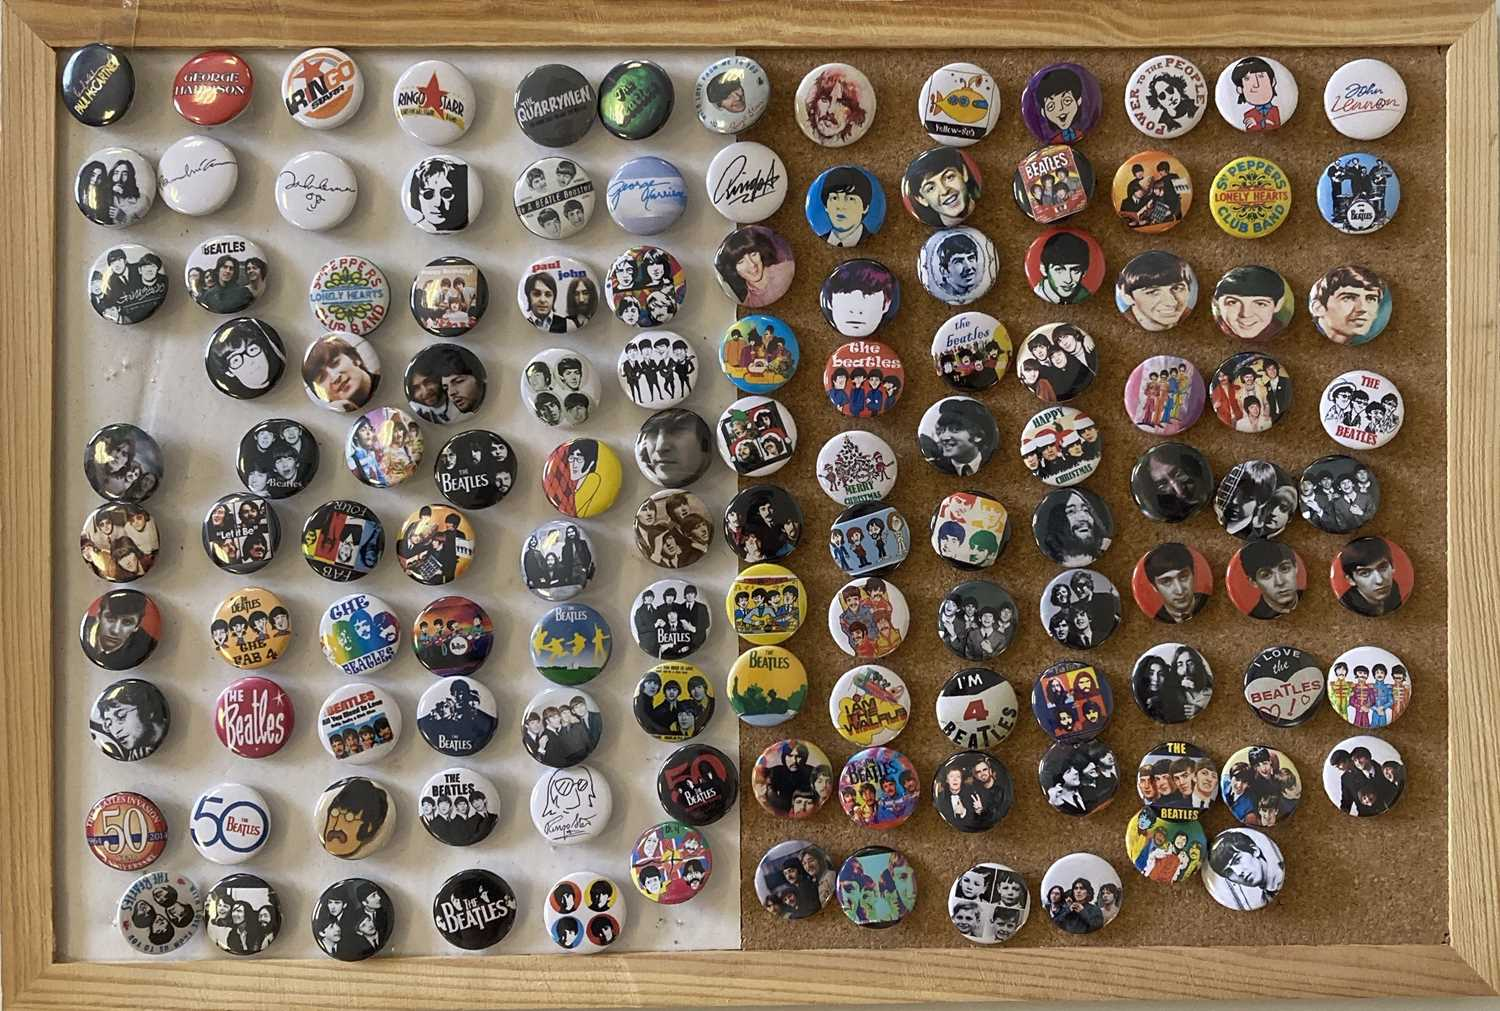 BEATLES BADGE COLLECTION. - Image 4 of 4